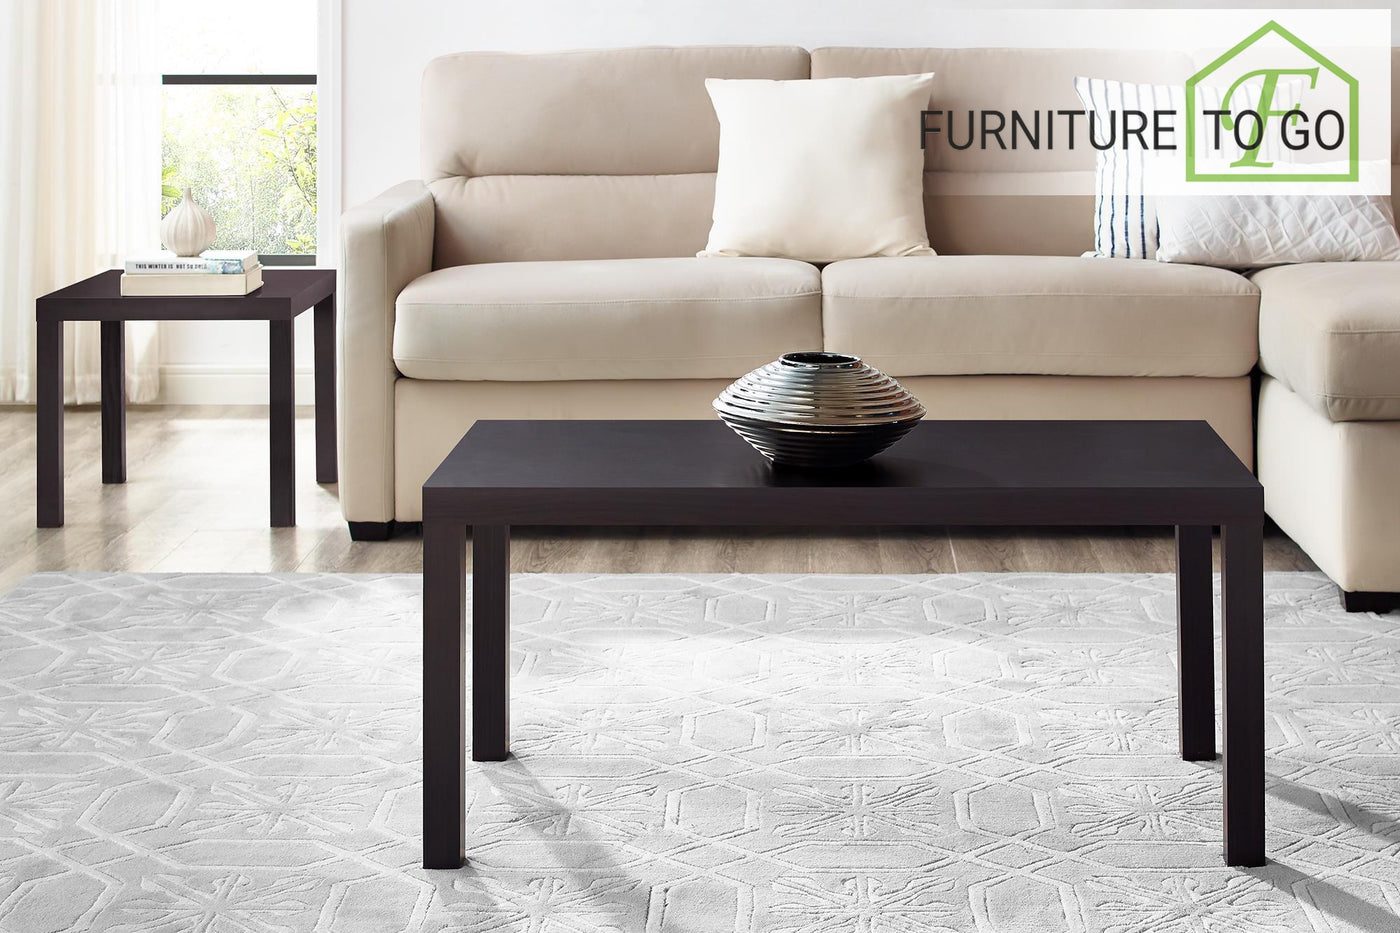 Groovy Clearance Furniture In Dallas 20 00 Espresso Basic Coffee Table Pabps2019 Chair Design Images Pabps2019Com